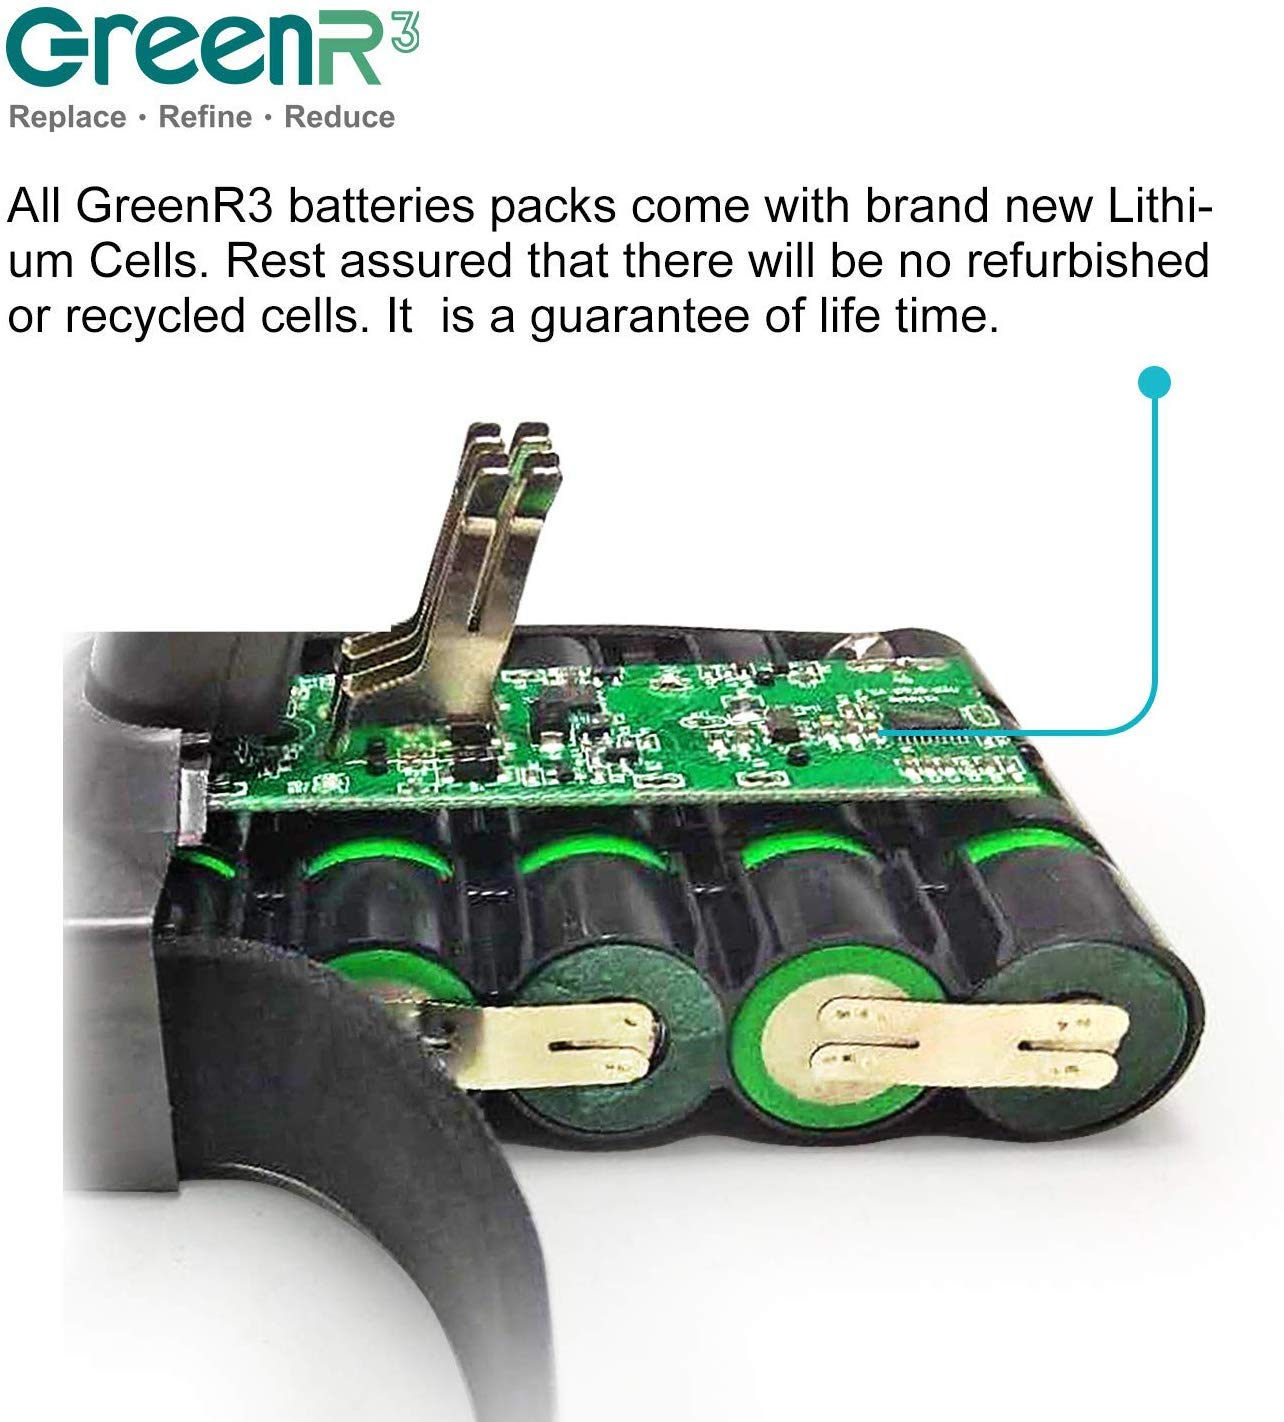 GreenR3 4.0Ah Li-ion Replacement Battery compatible for Dyson V8